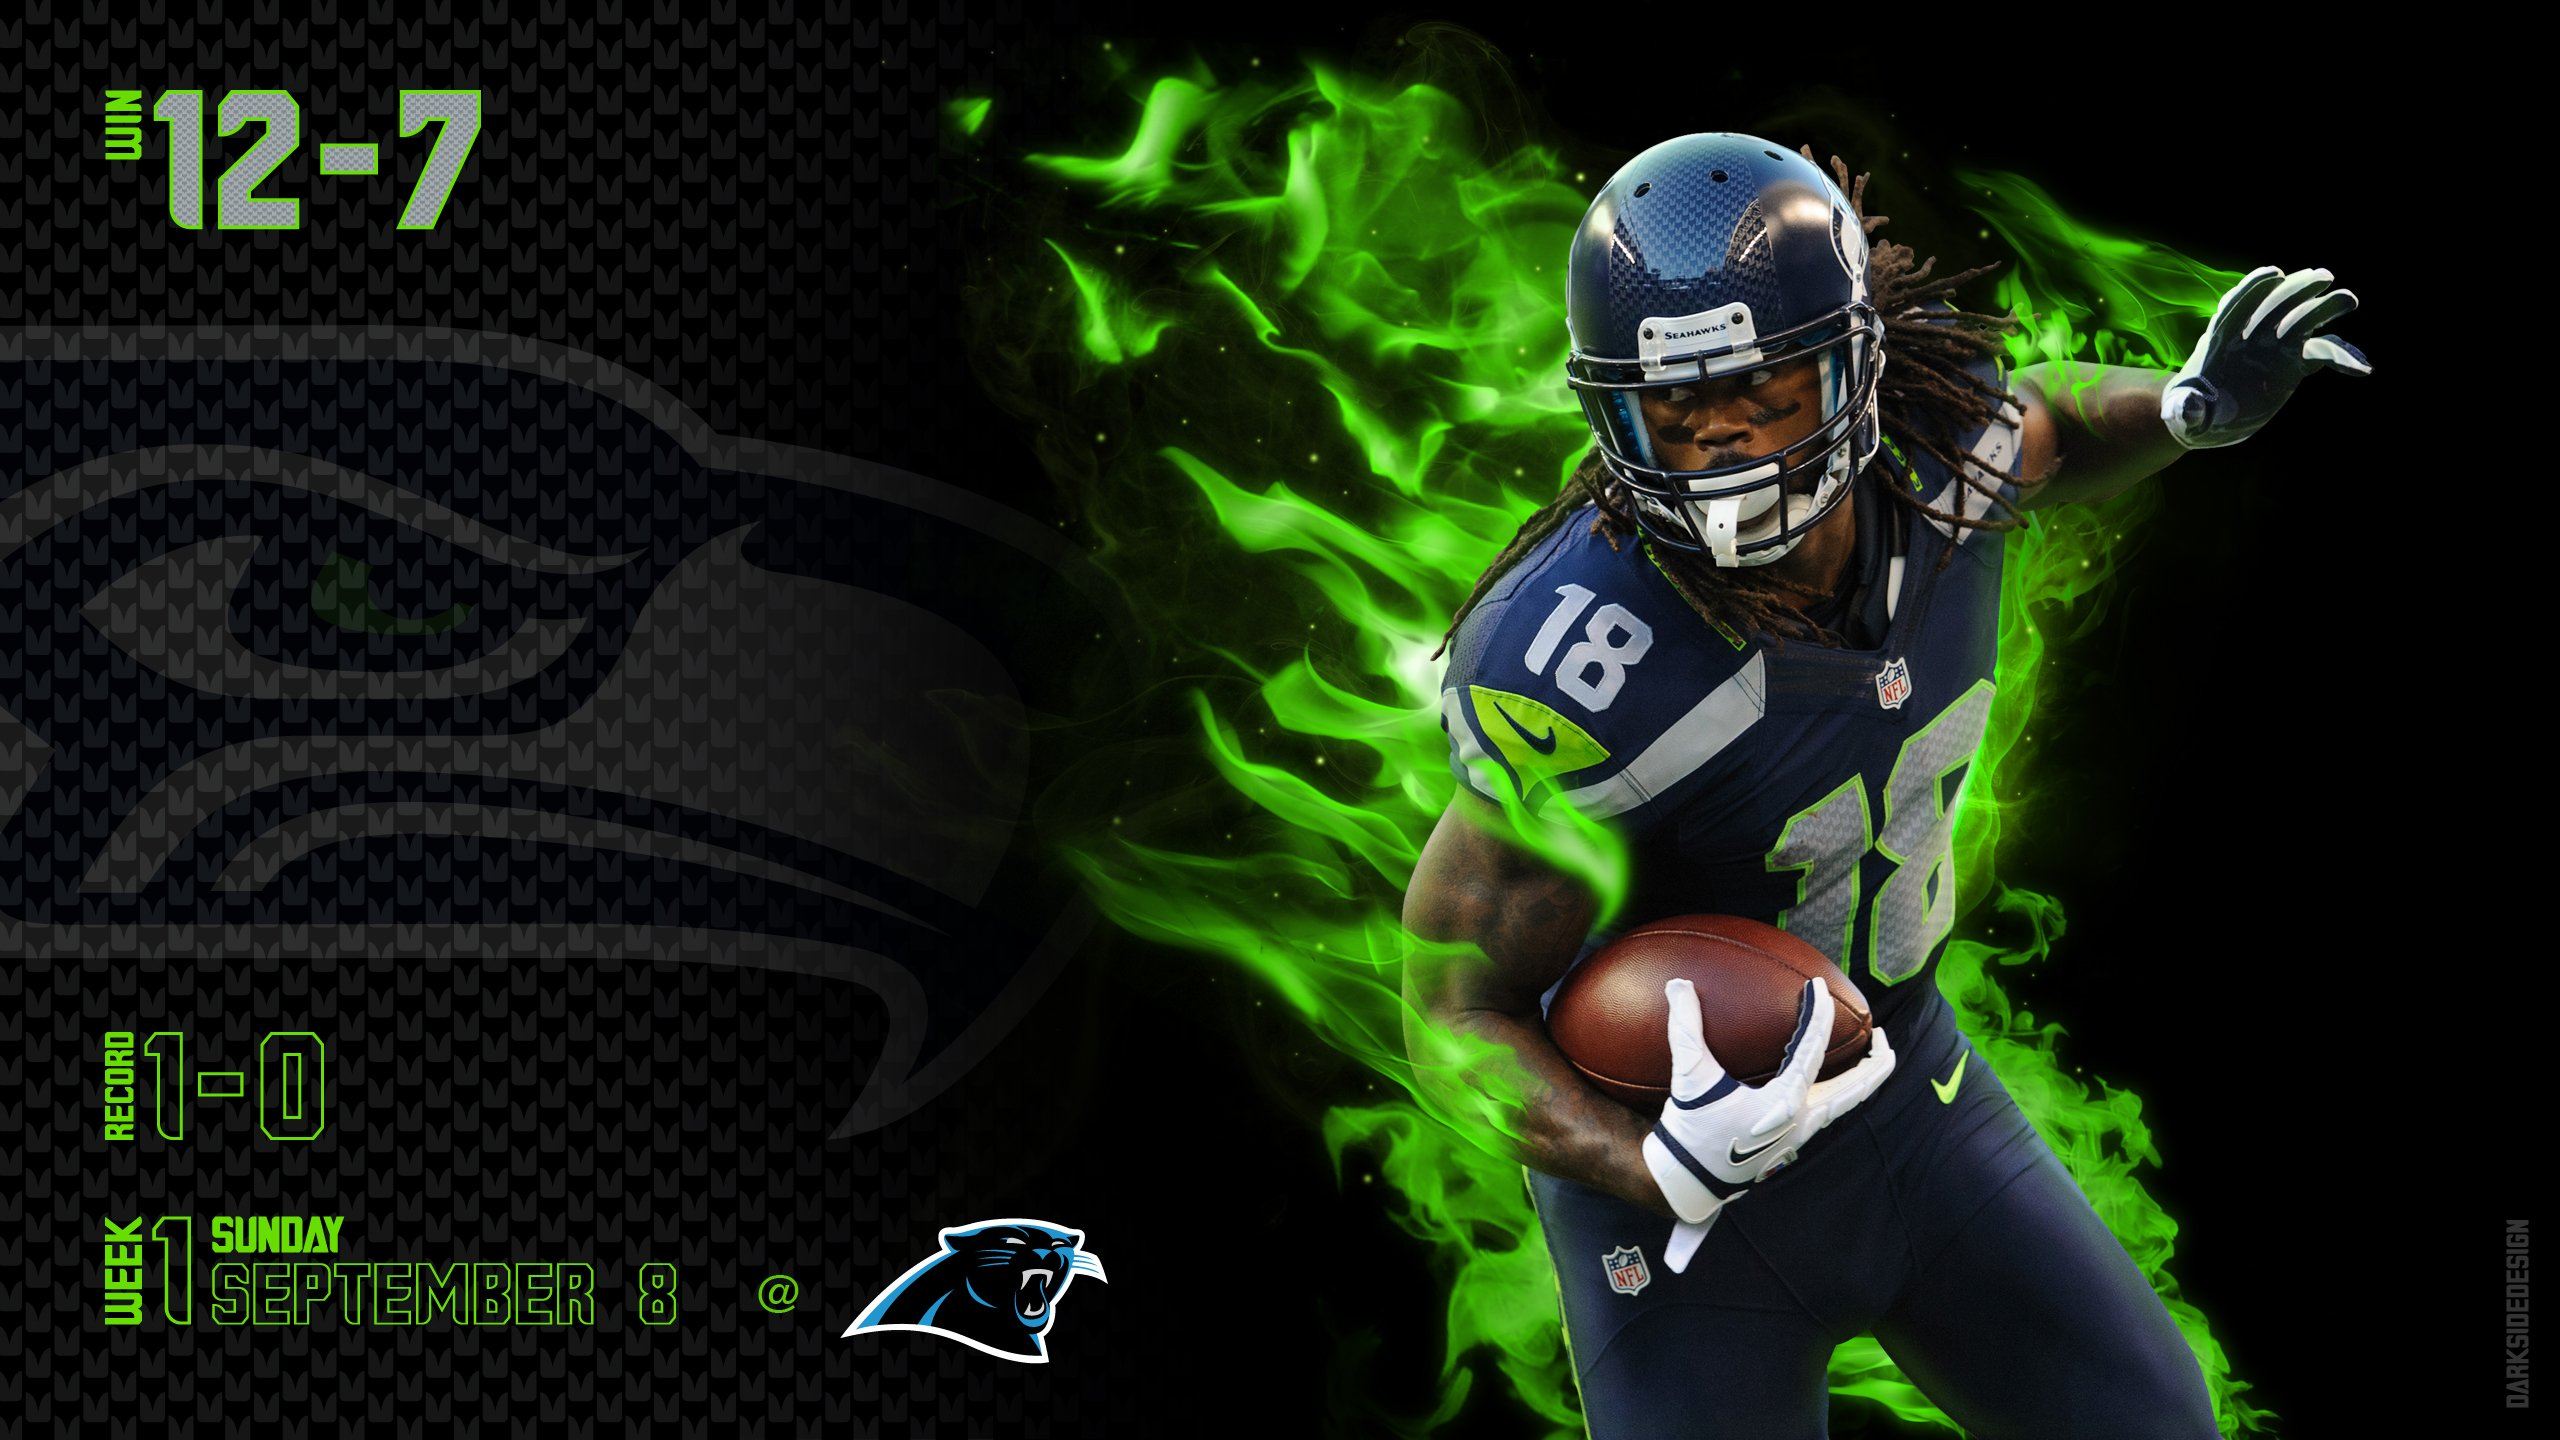 Seattle Seahawks Wallpaper 1920x1080: Cool Seattle Seahawks Wallpaper